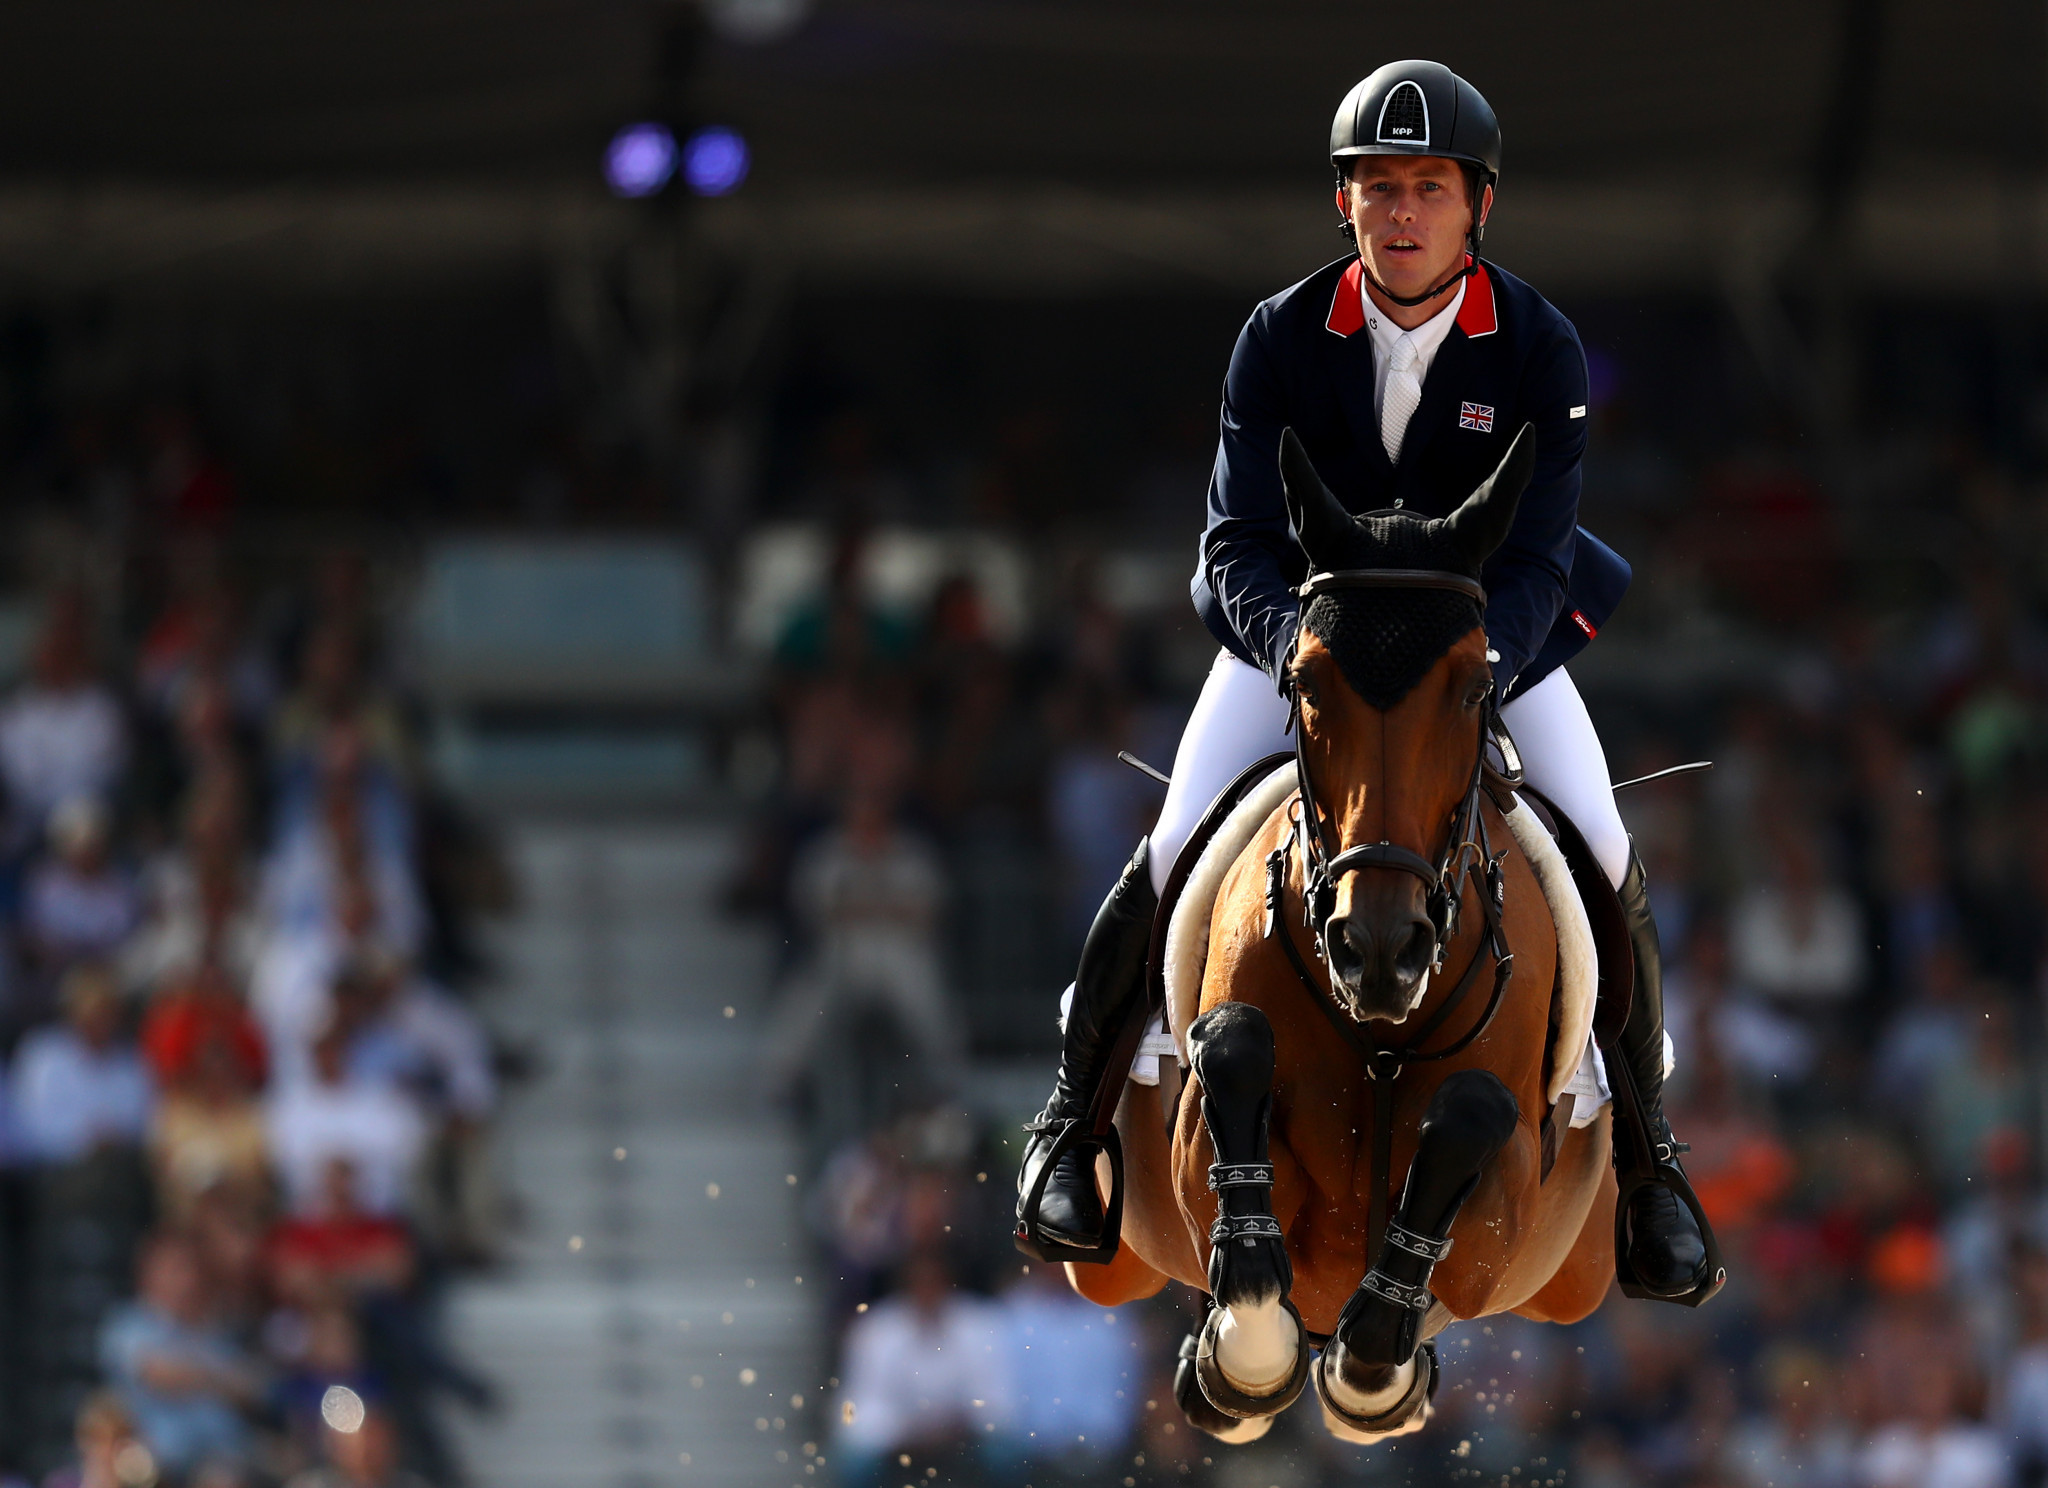 Brash makes strong start at Global Champions Tour event in Stockholm